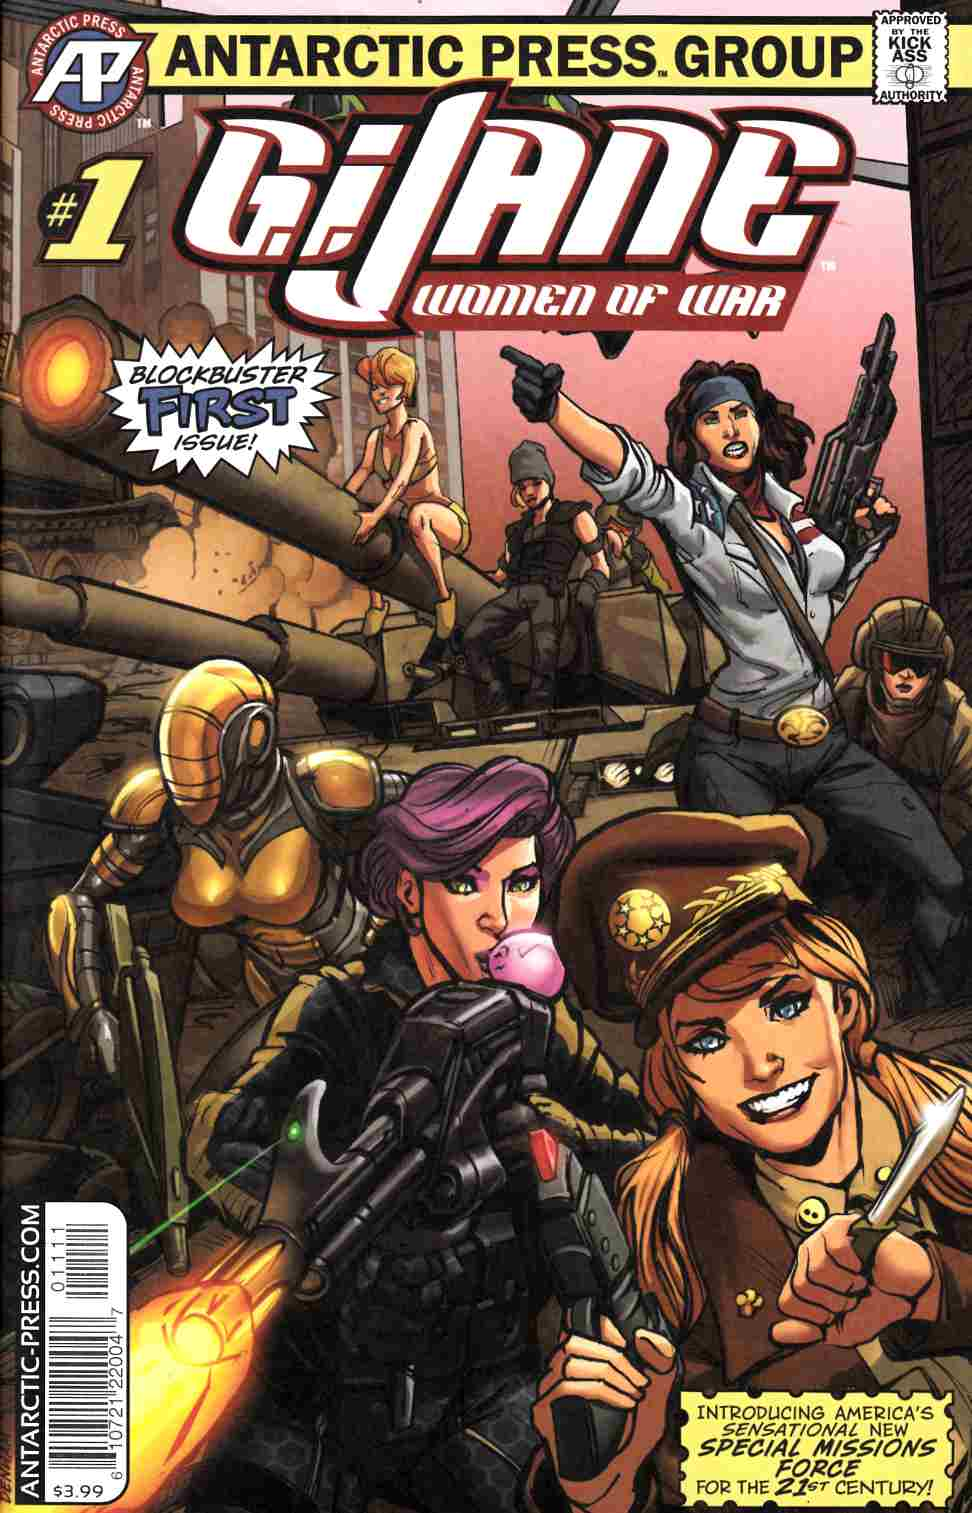 GI Jane Women of War #1 [Antarctic Press Comic] LARGE